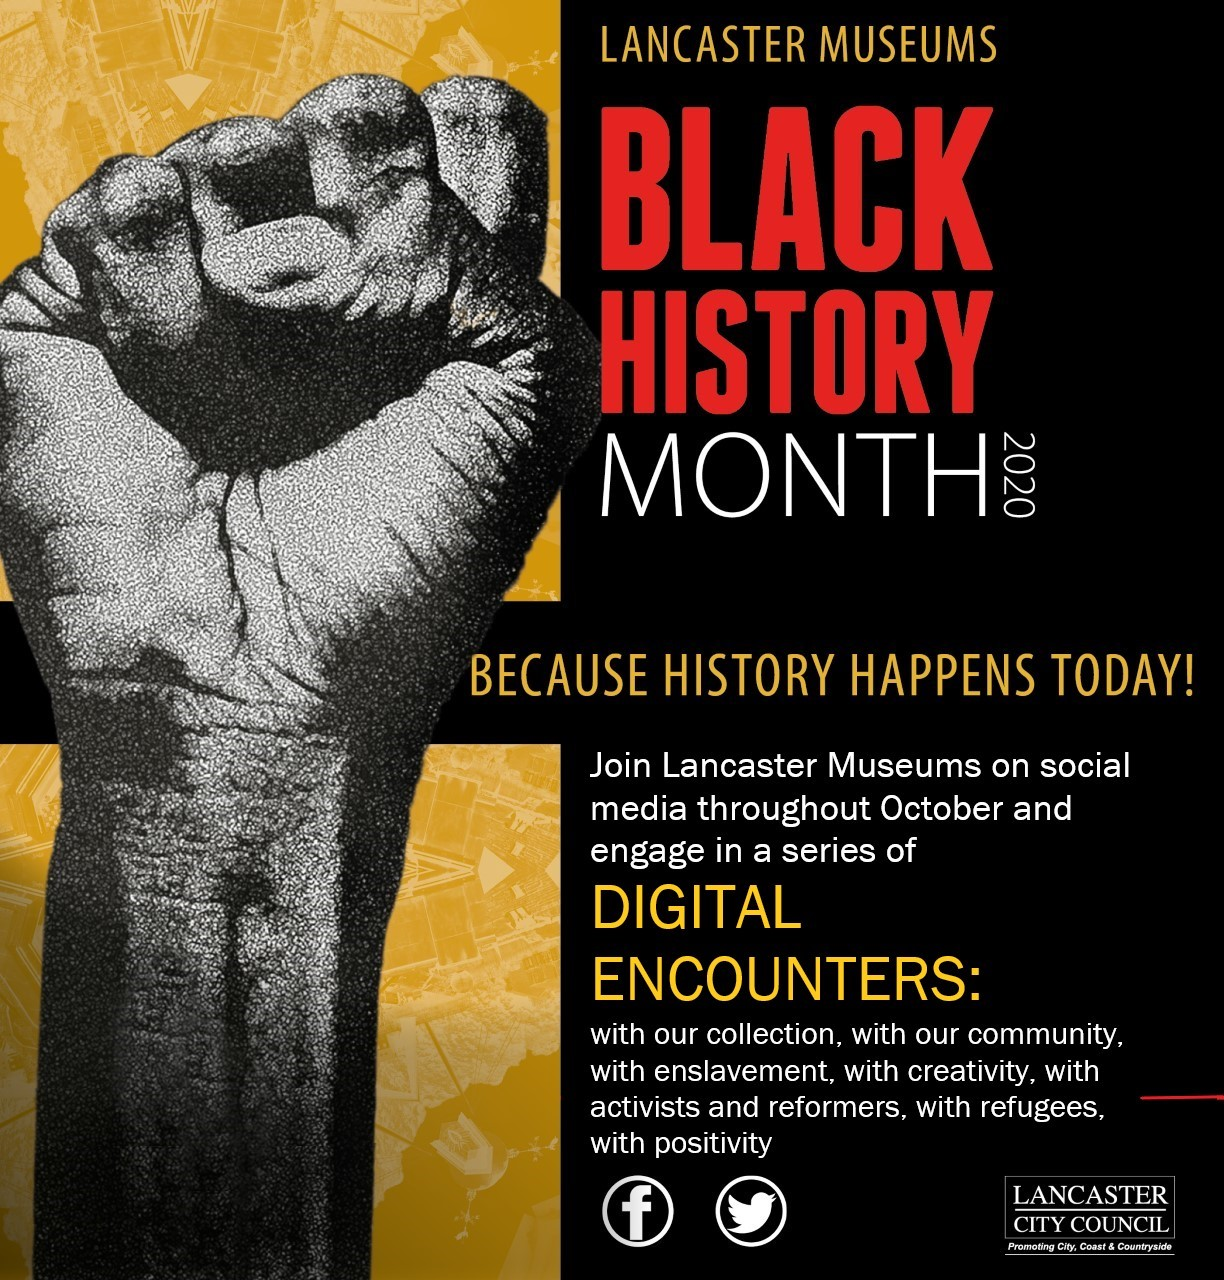 "Lancaster Museums are producing and sharing Daily Digital Encounters with ""our collection, with our communities, with enslavement, with creativity, with activists and reformers, with refugees, with positivity"" on social media throughout Black History Month."